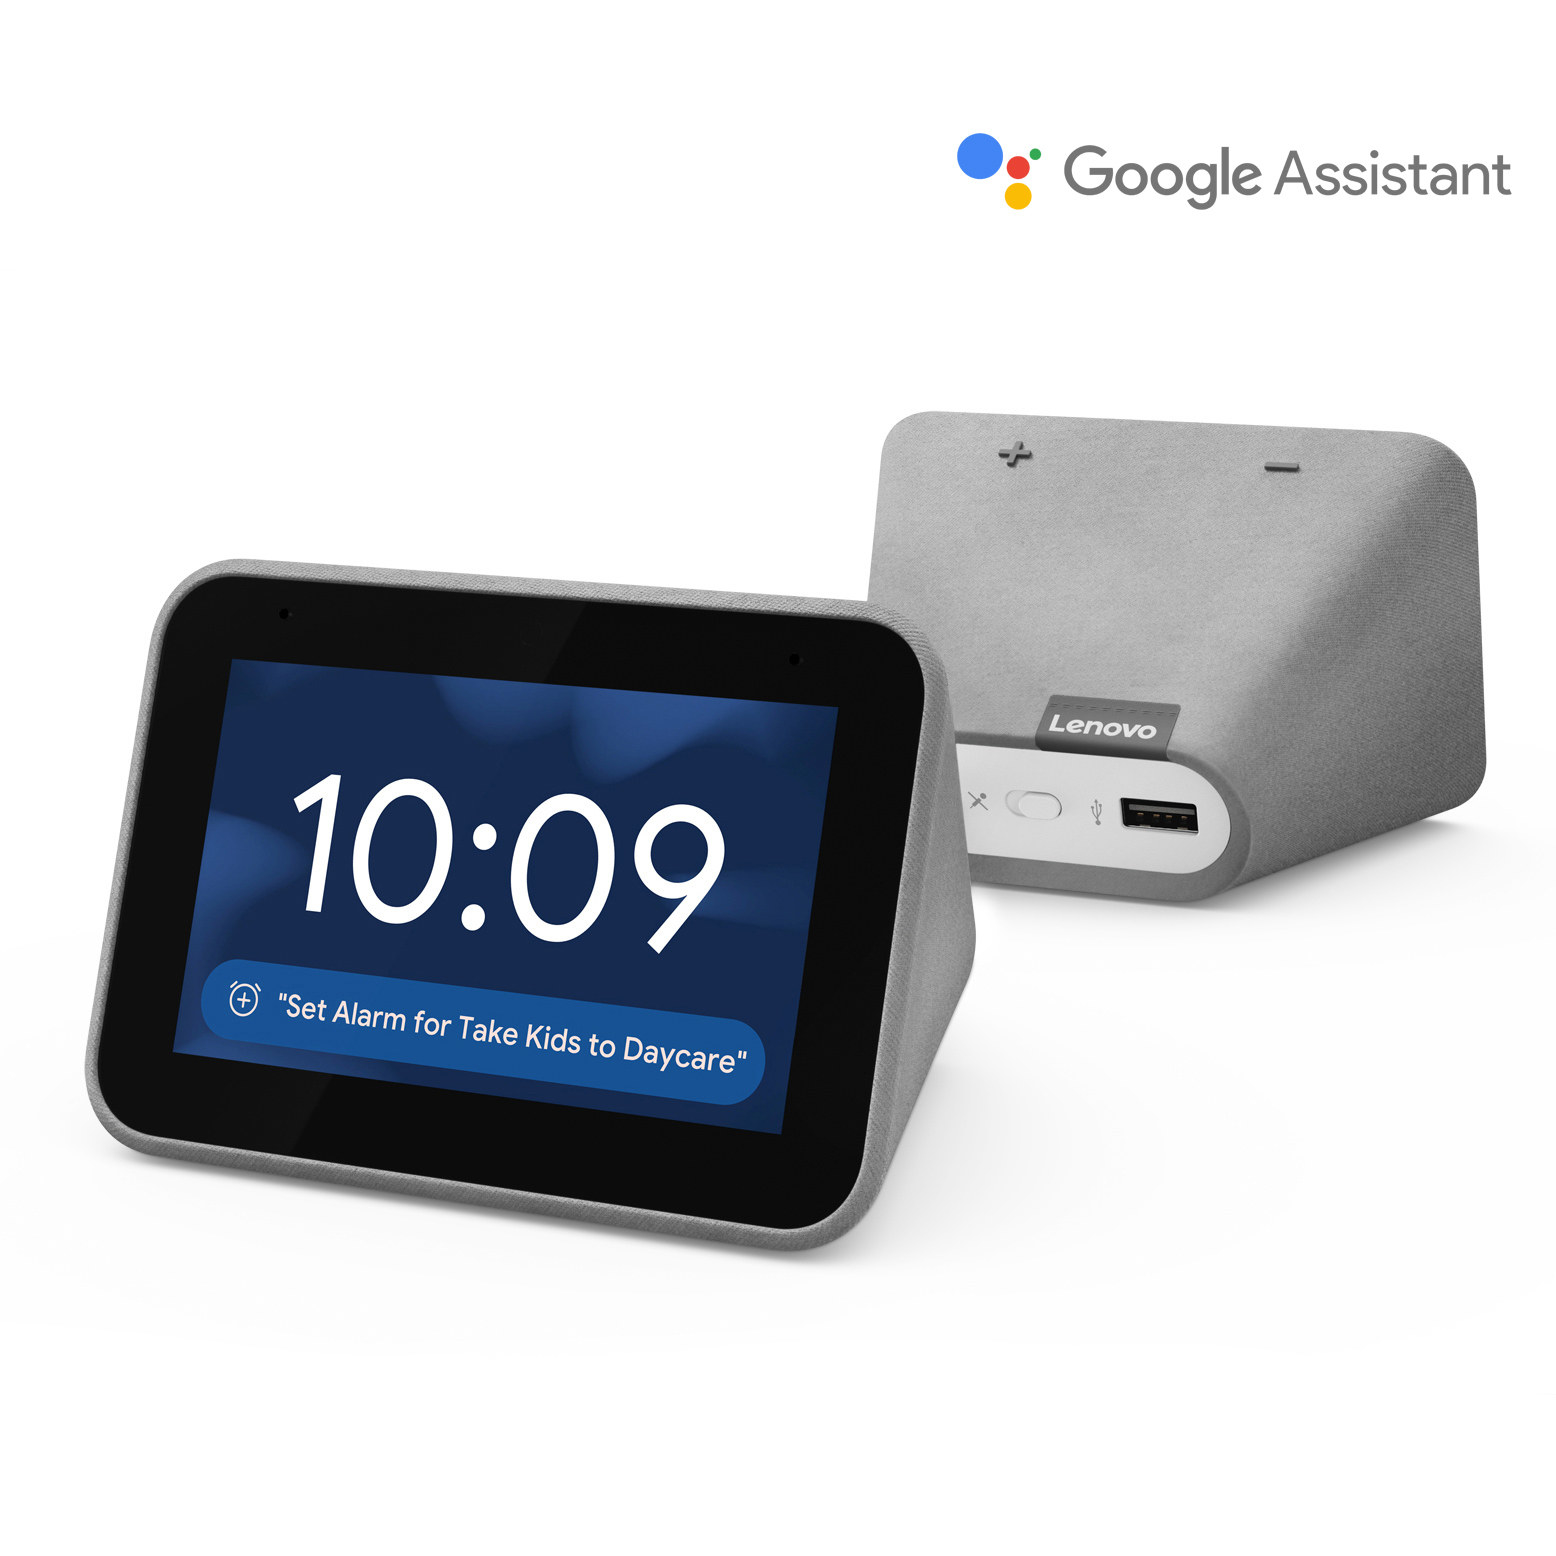 The gray smart clock with a digital display